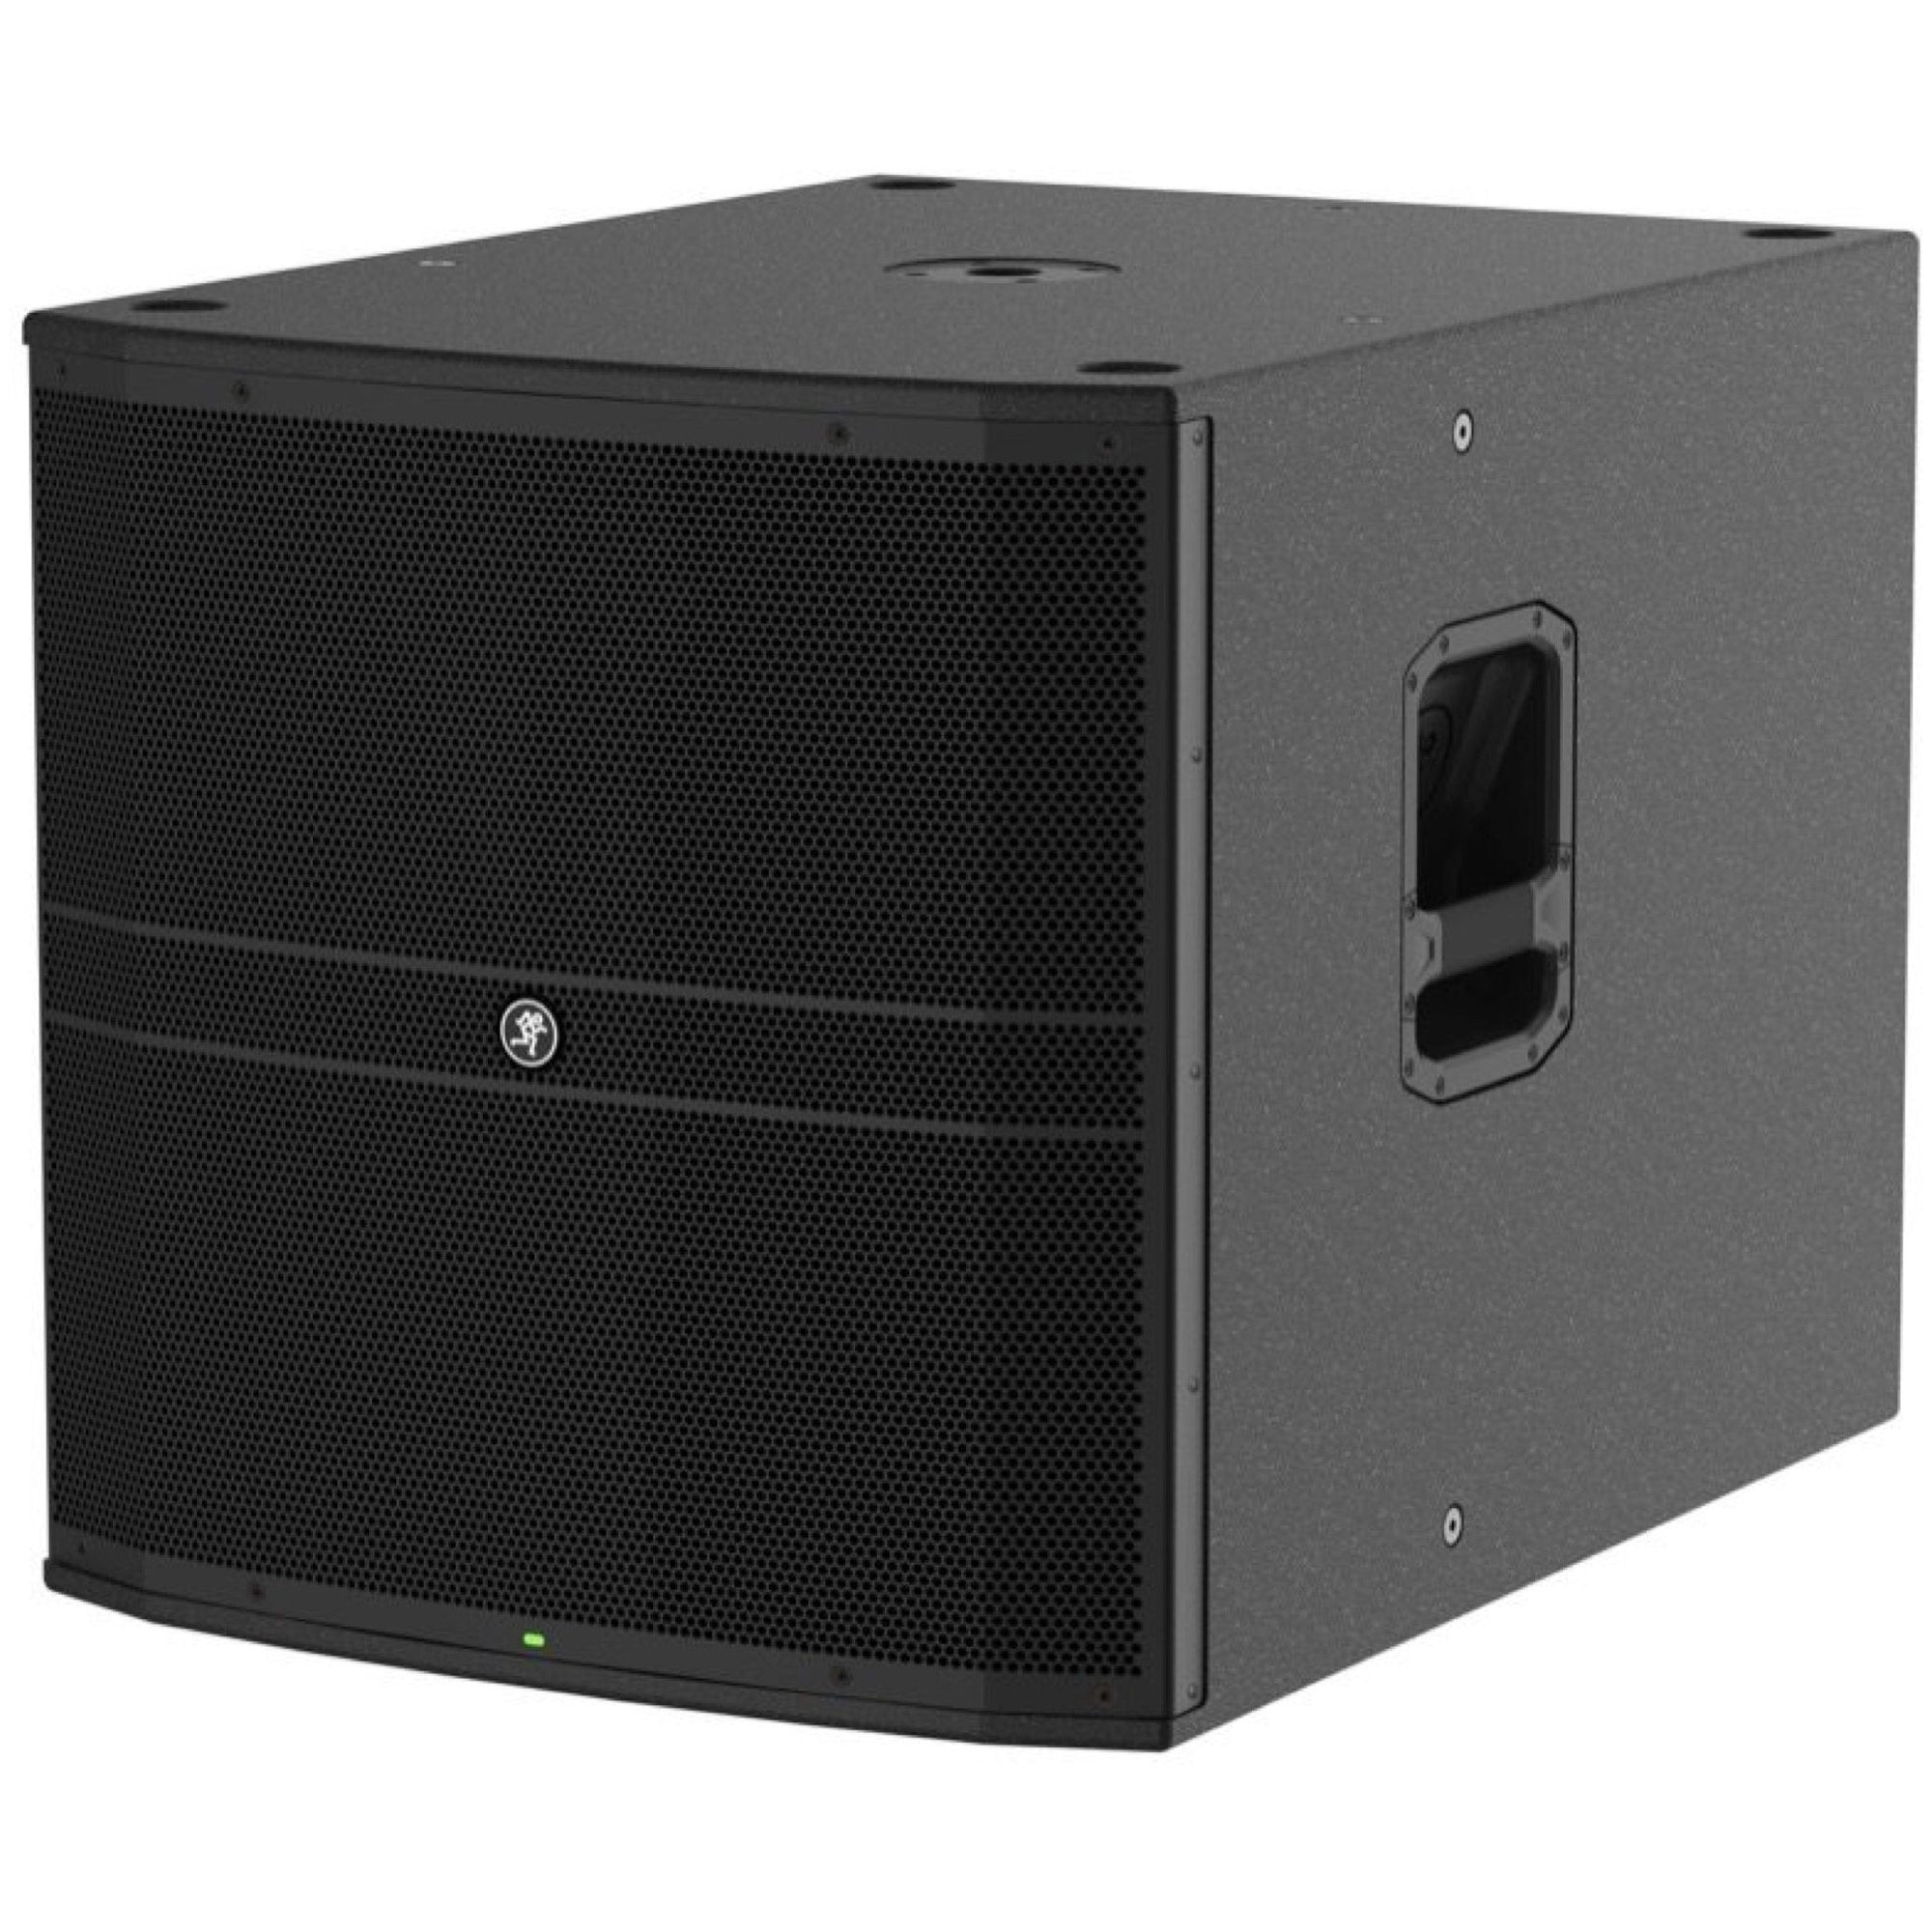 Mackie DRM-18S Powered Subwoofer